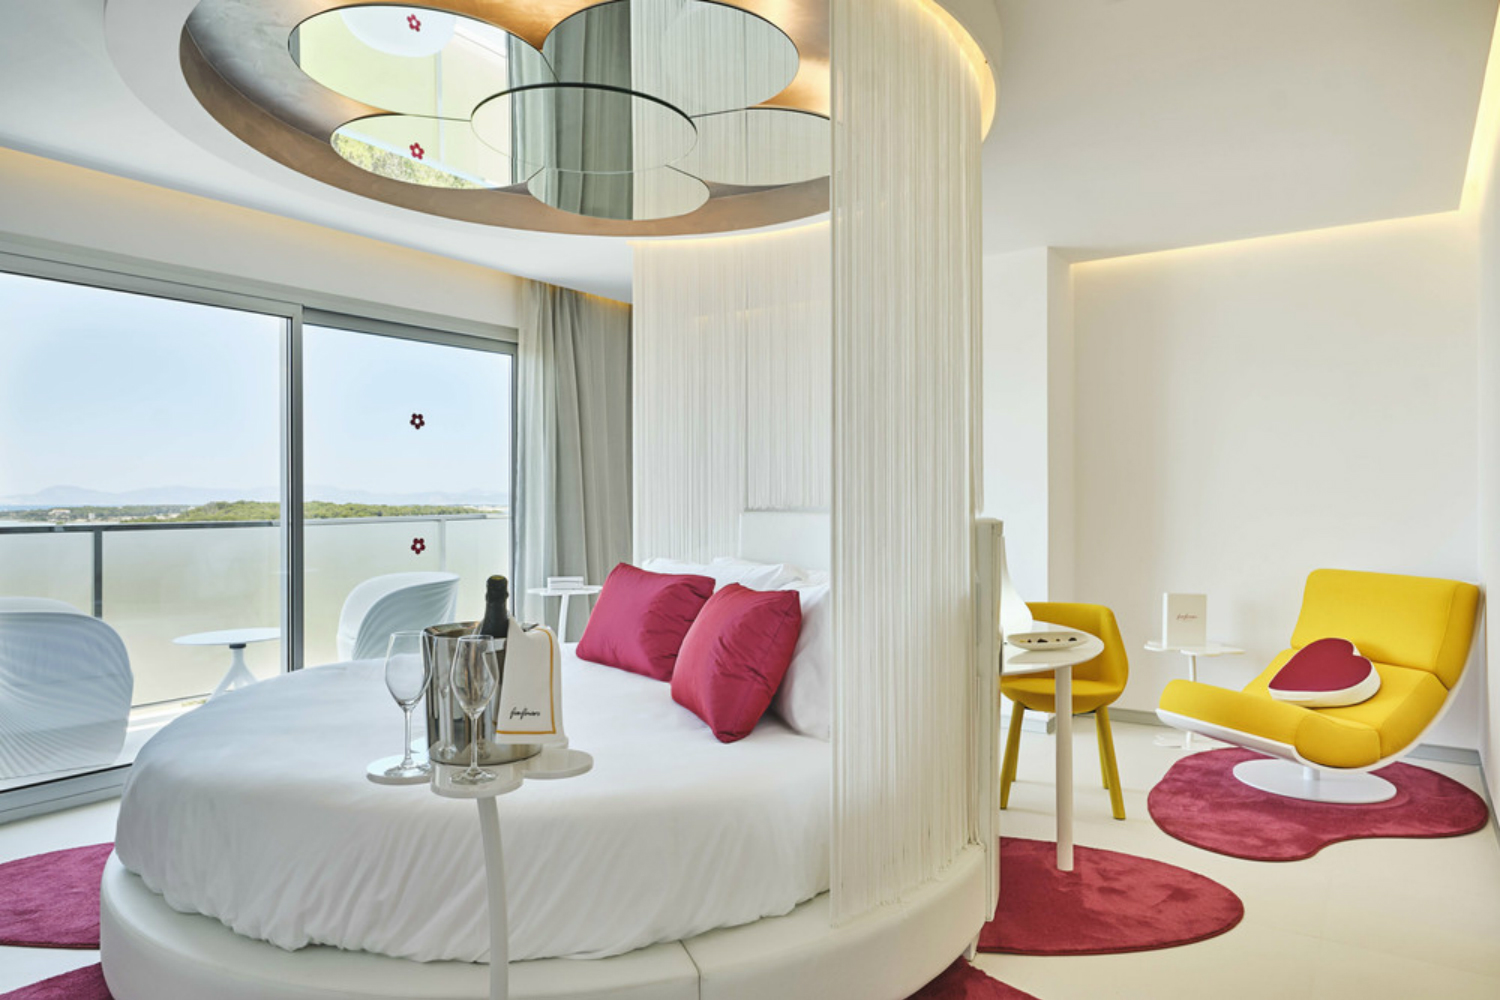 Formentera S First Five Star Luxury Hotel Has A 60 S Hippie Vibe